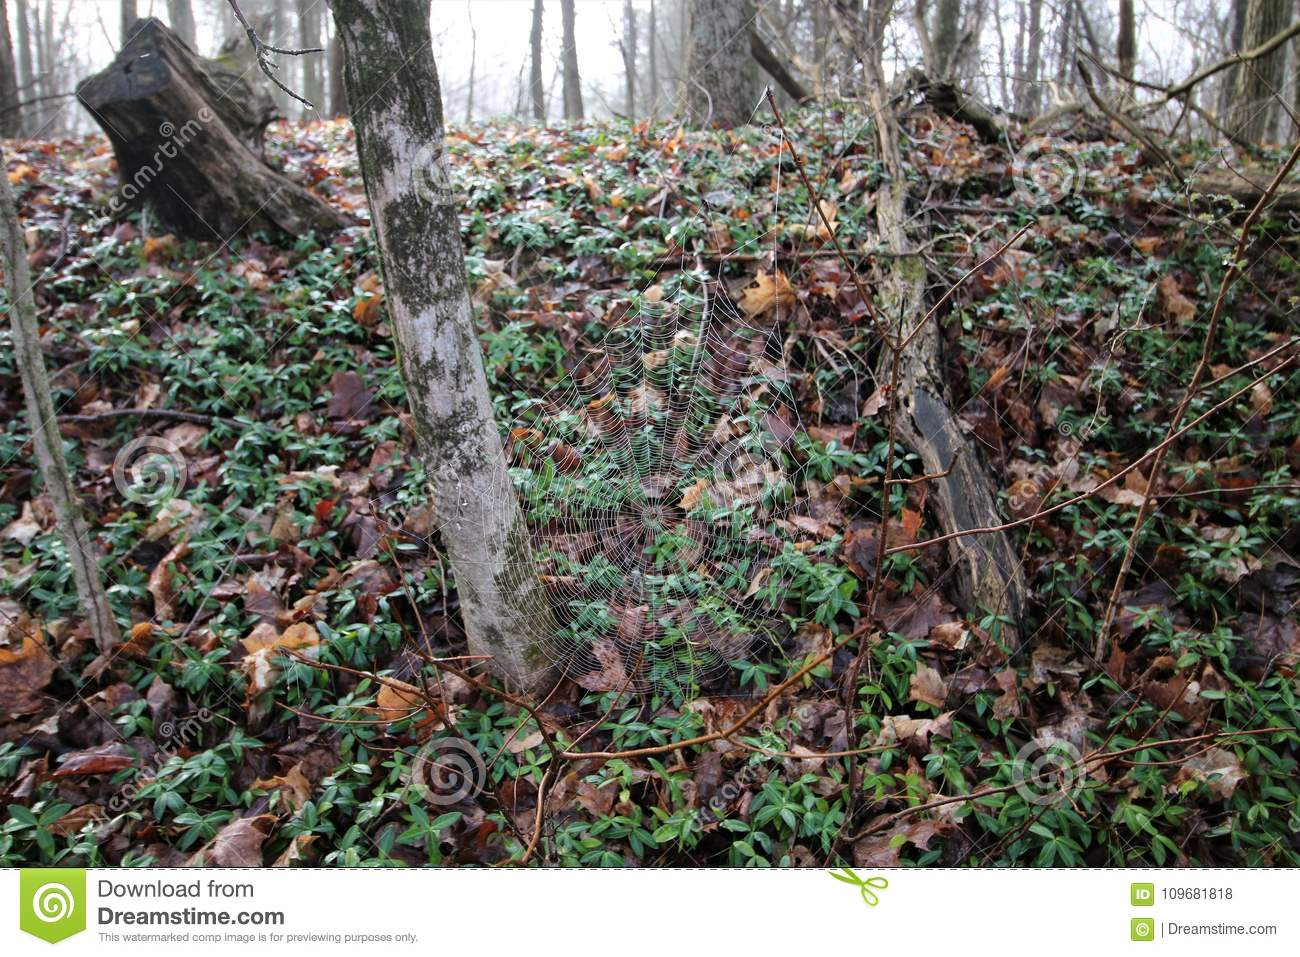 Spider web in forest stock photo  Image of rural, spider - 109681818